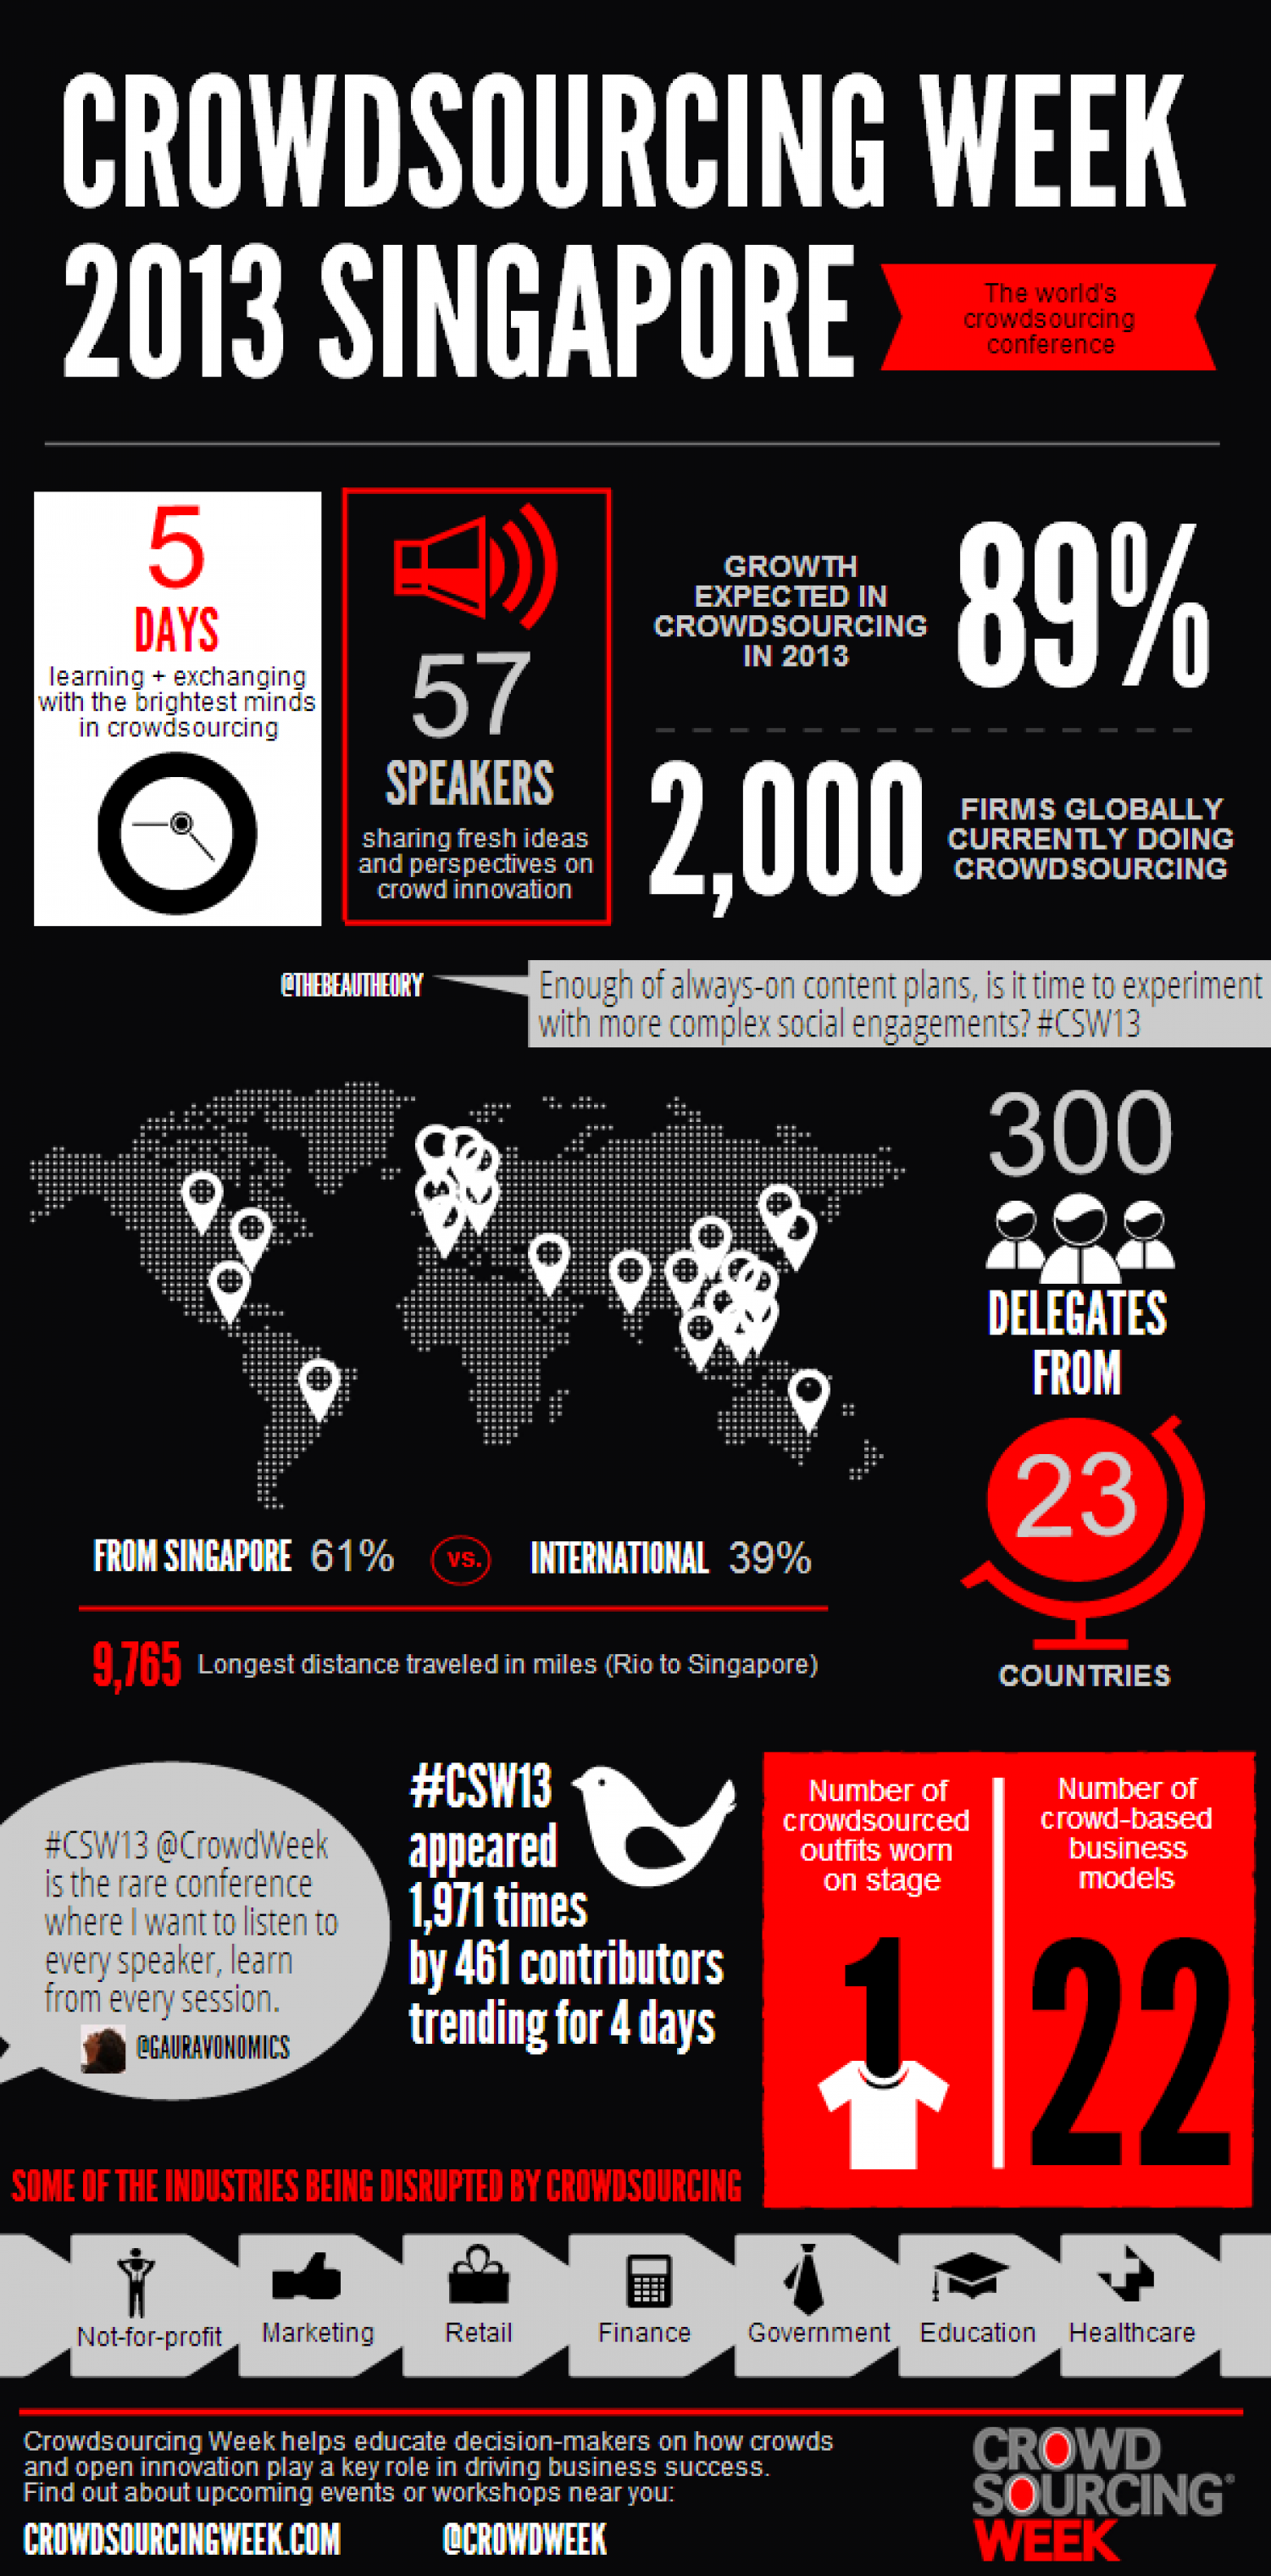 Crowdsourcing Week 2013 Infographic